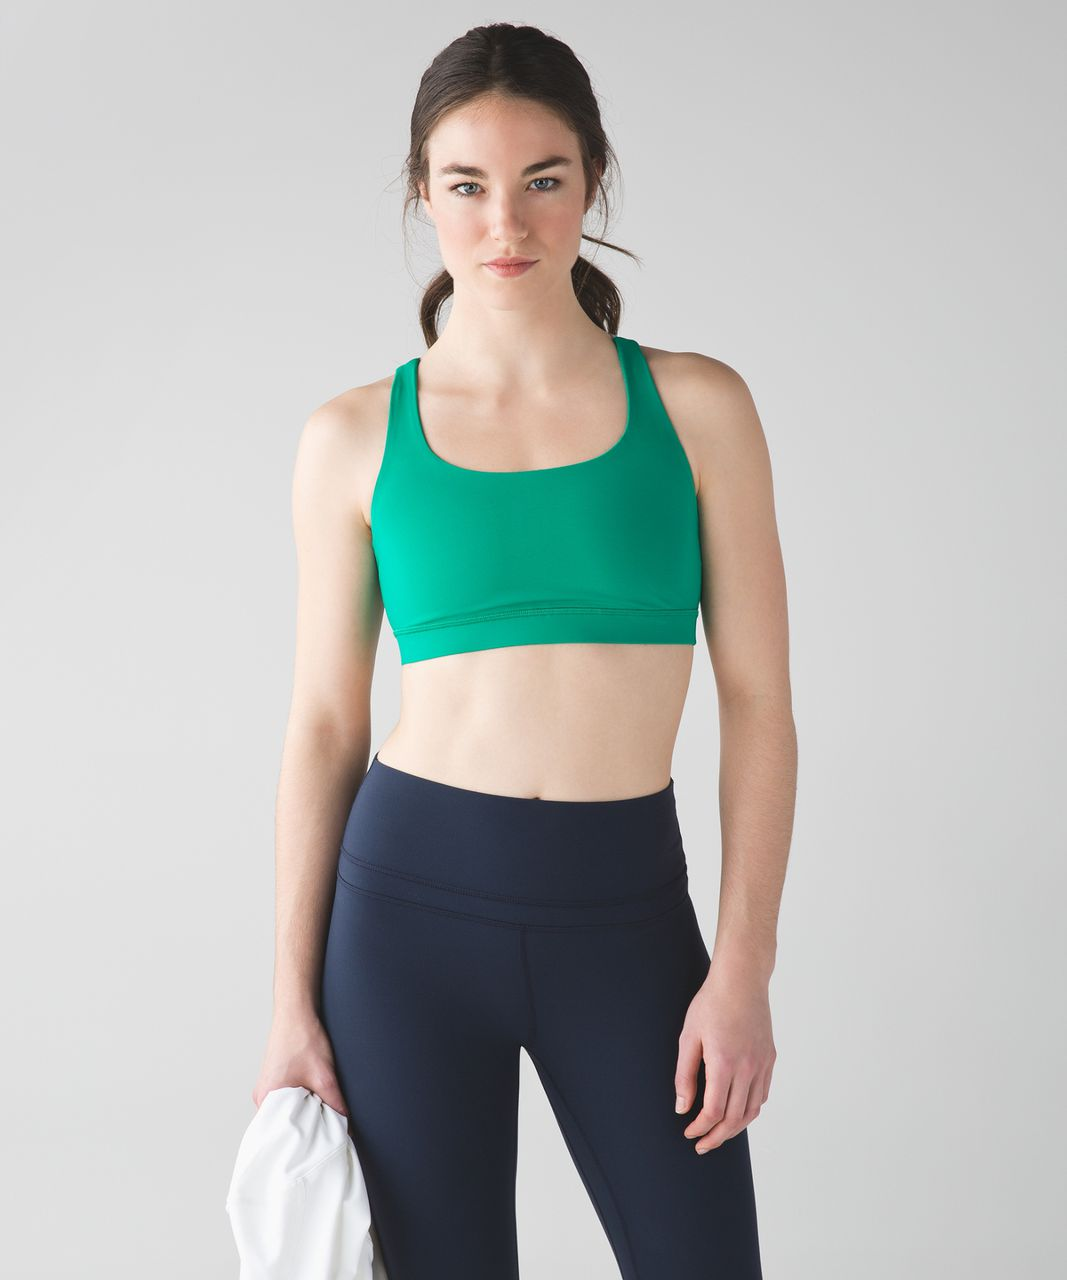 Lululemon Energy Bra - Jungle / Seven Wonders Multi